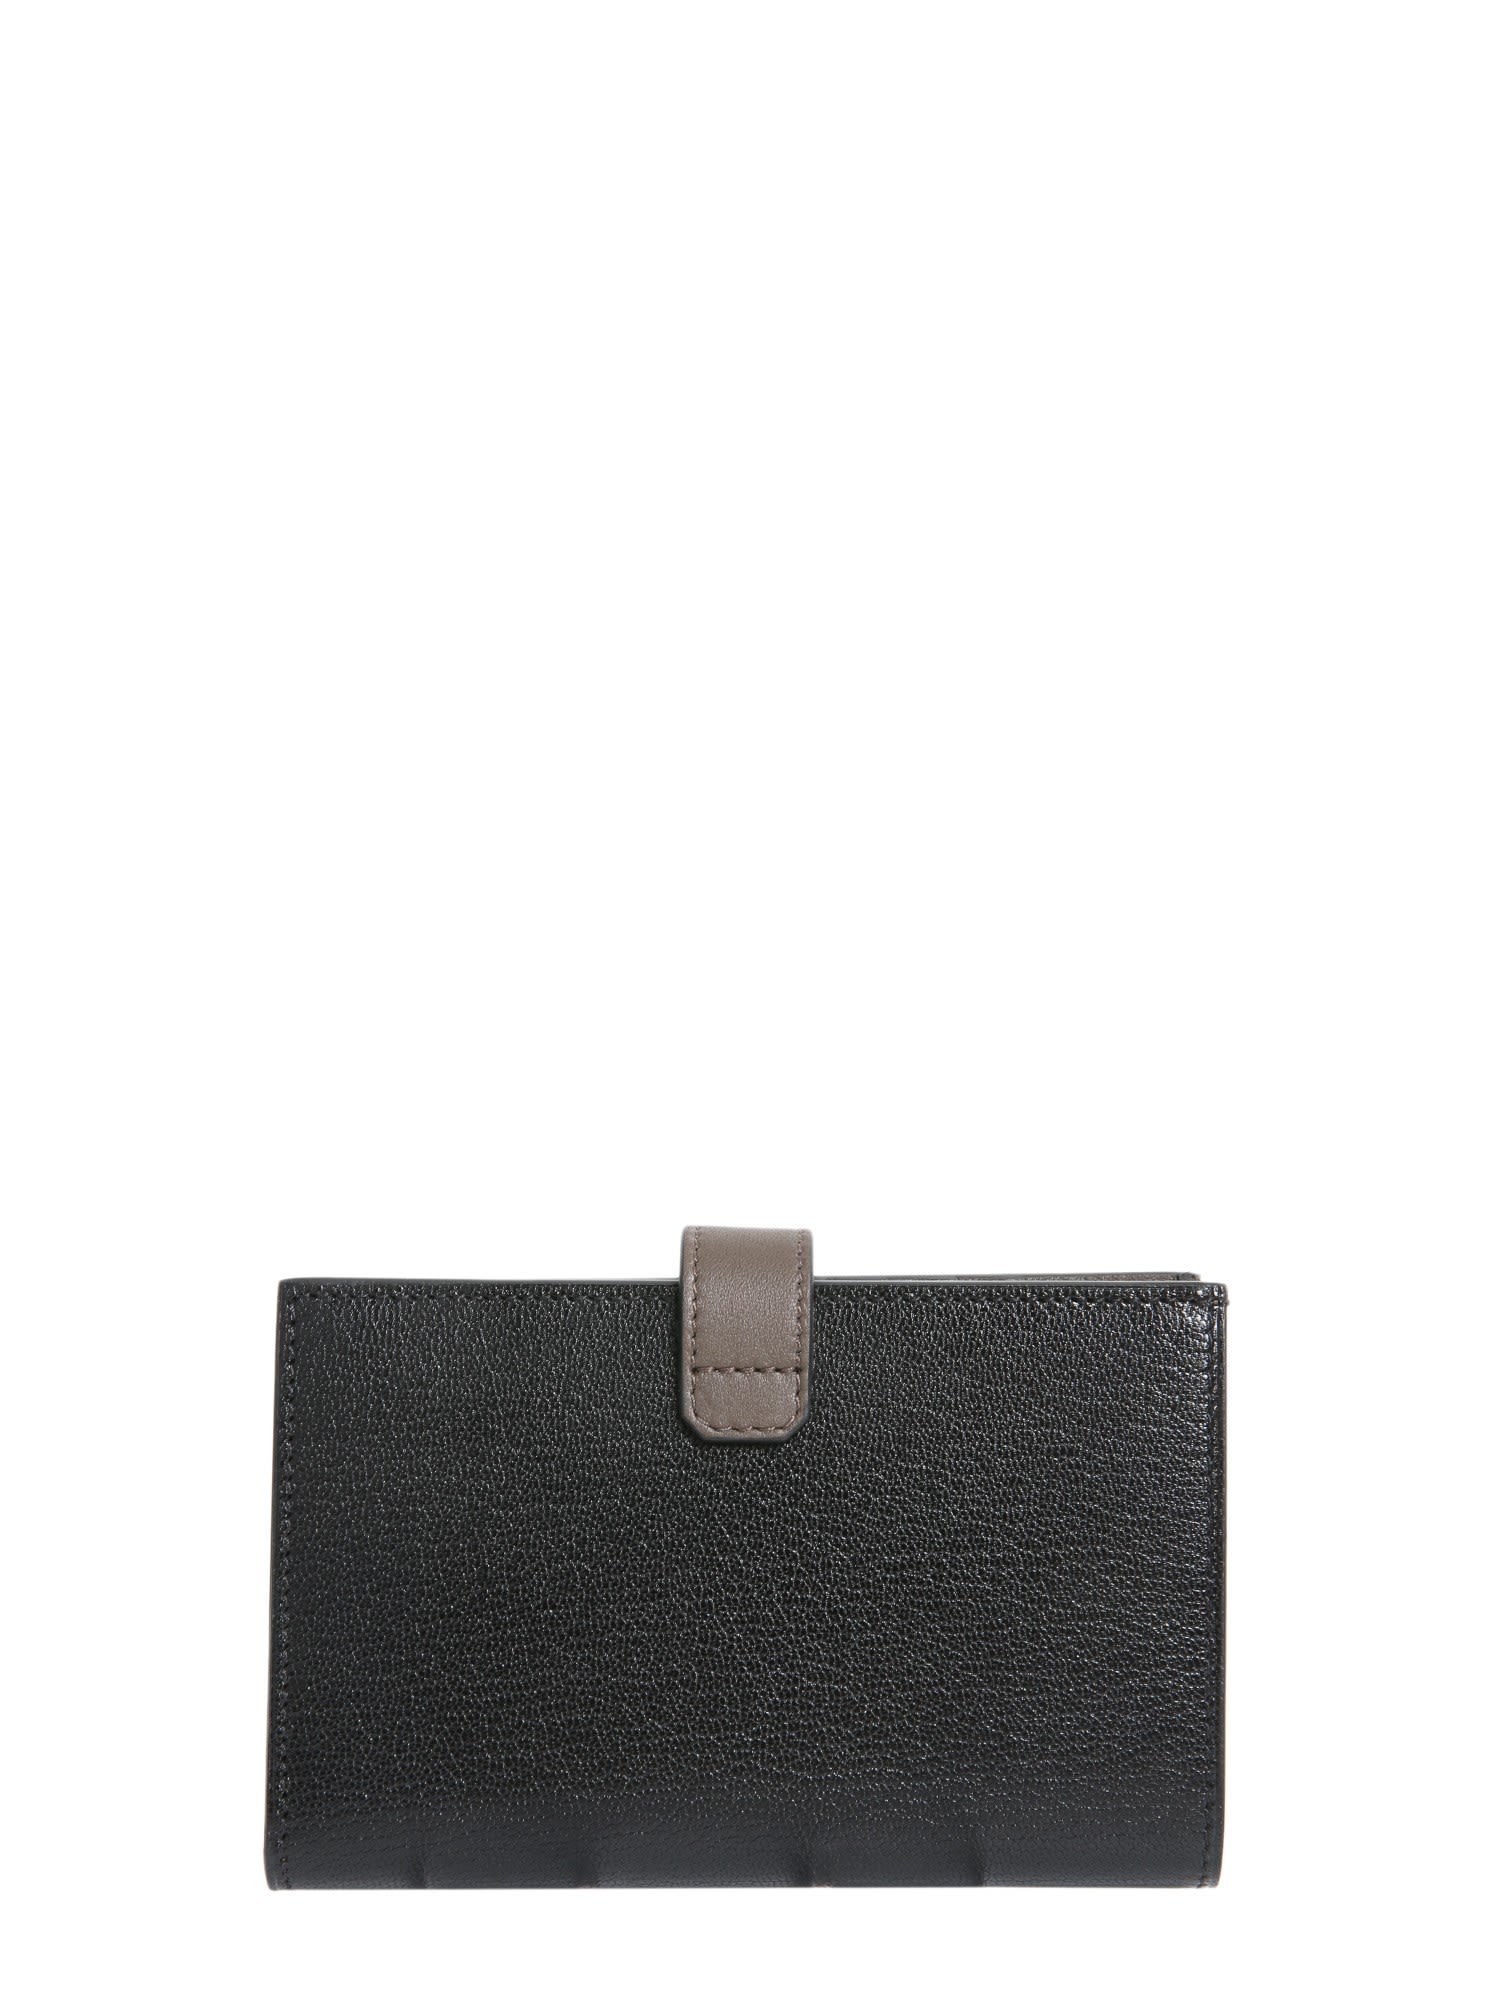 Clearance How Much Givenchy Gv3 continental wallet Many Colors Sneakernews Cheap Online 6Tle92p